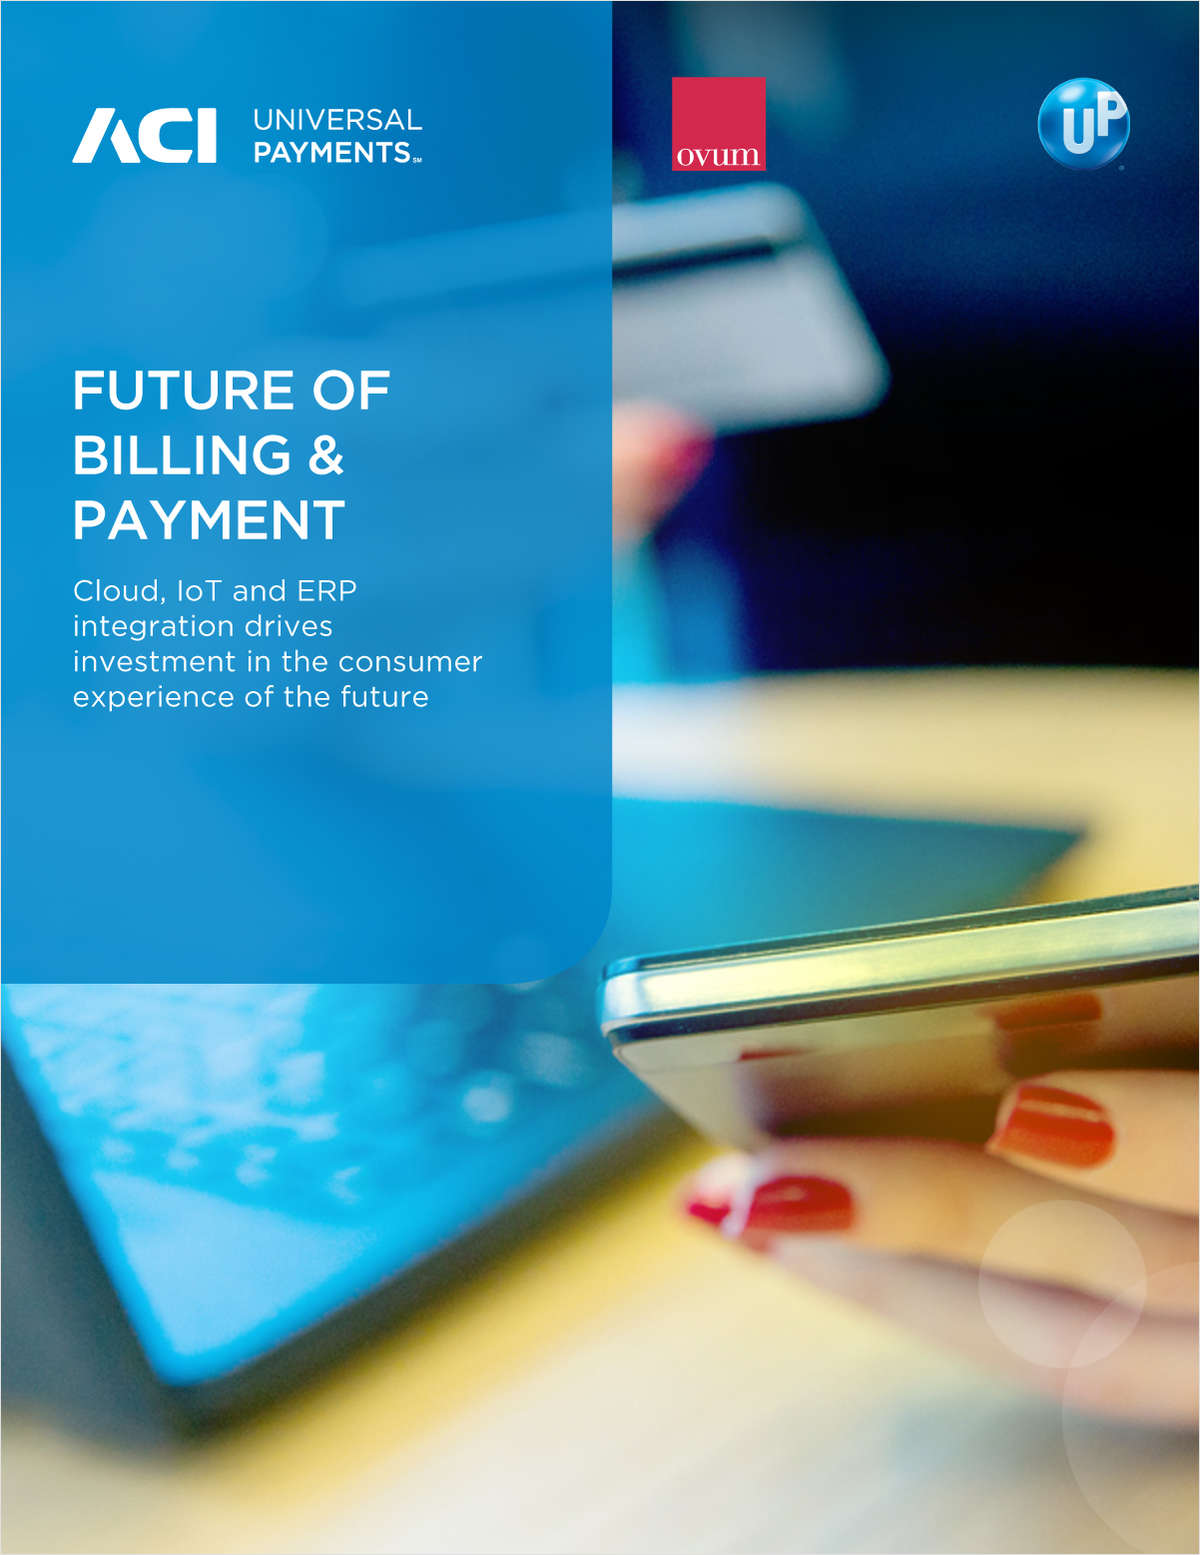 Bill Payment Services - Payments Infrastructure is Key to the Future in Higher Ed